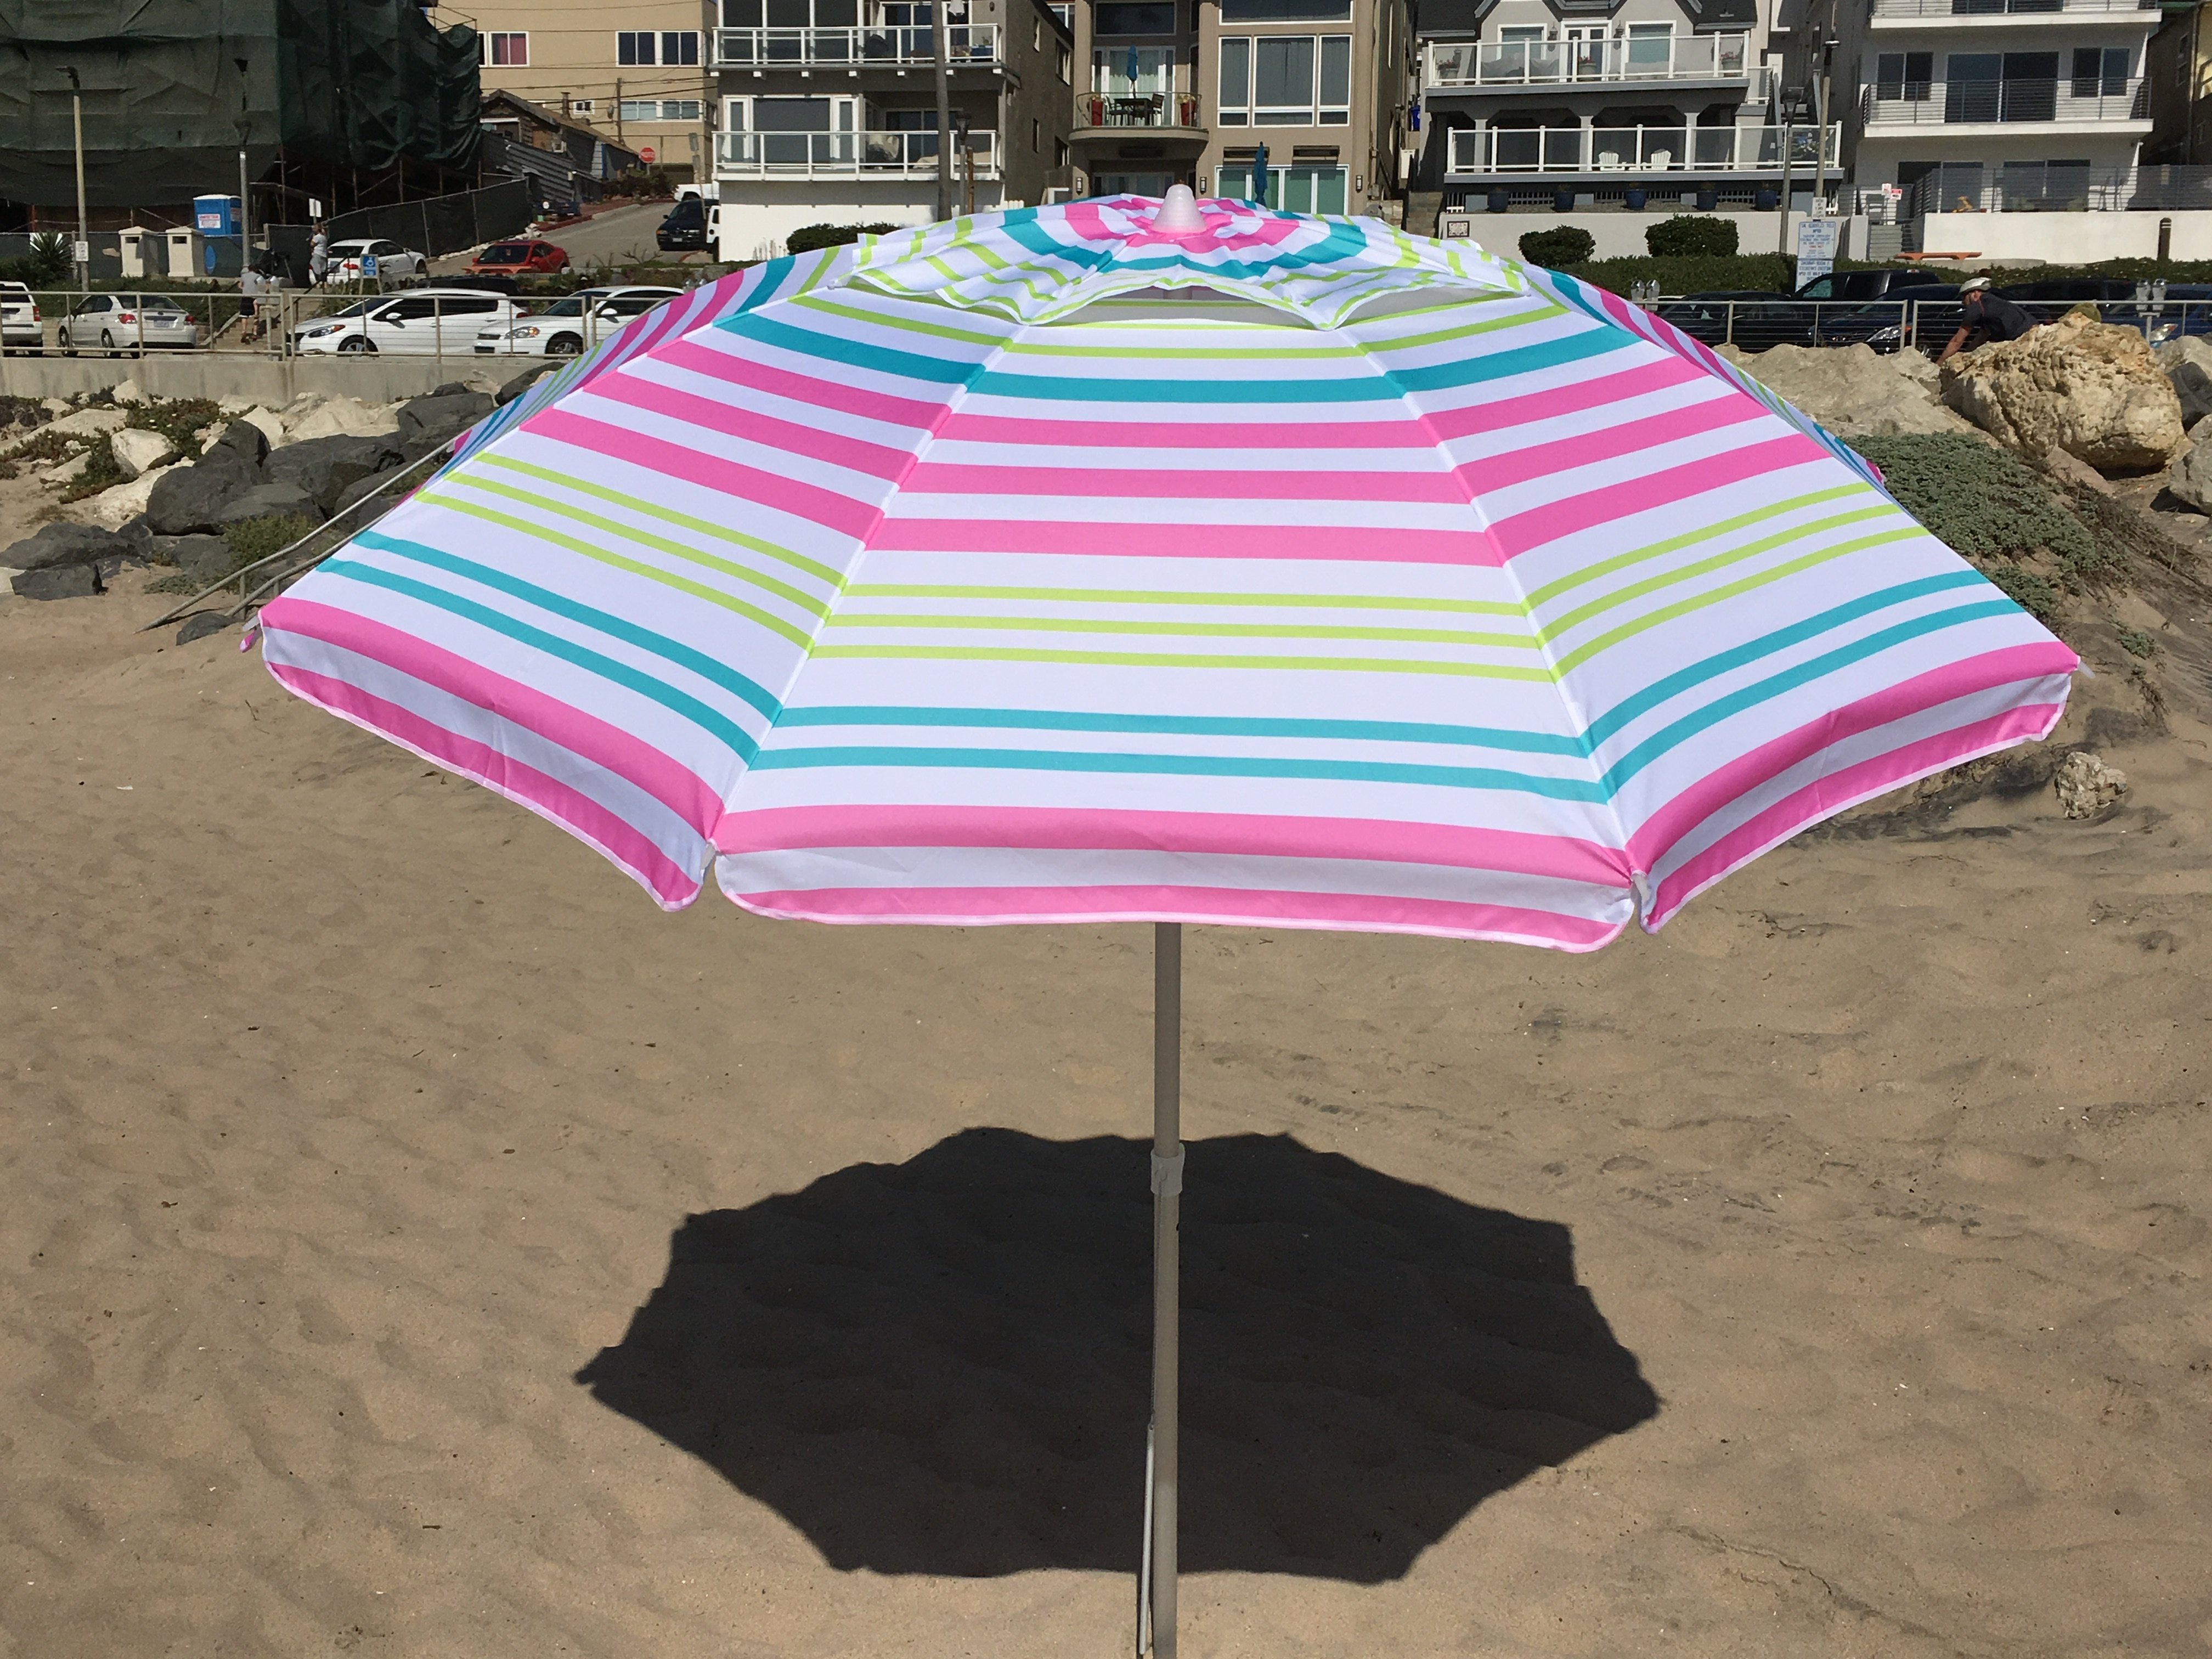 7' Beach Umbrella For Most Up To Date Schroeder Heavy Duty Beach Umbrellas (View 2 of 20)